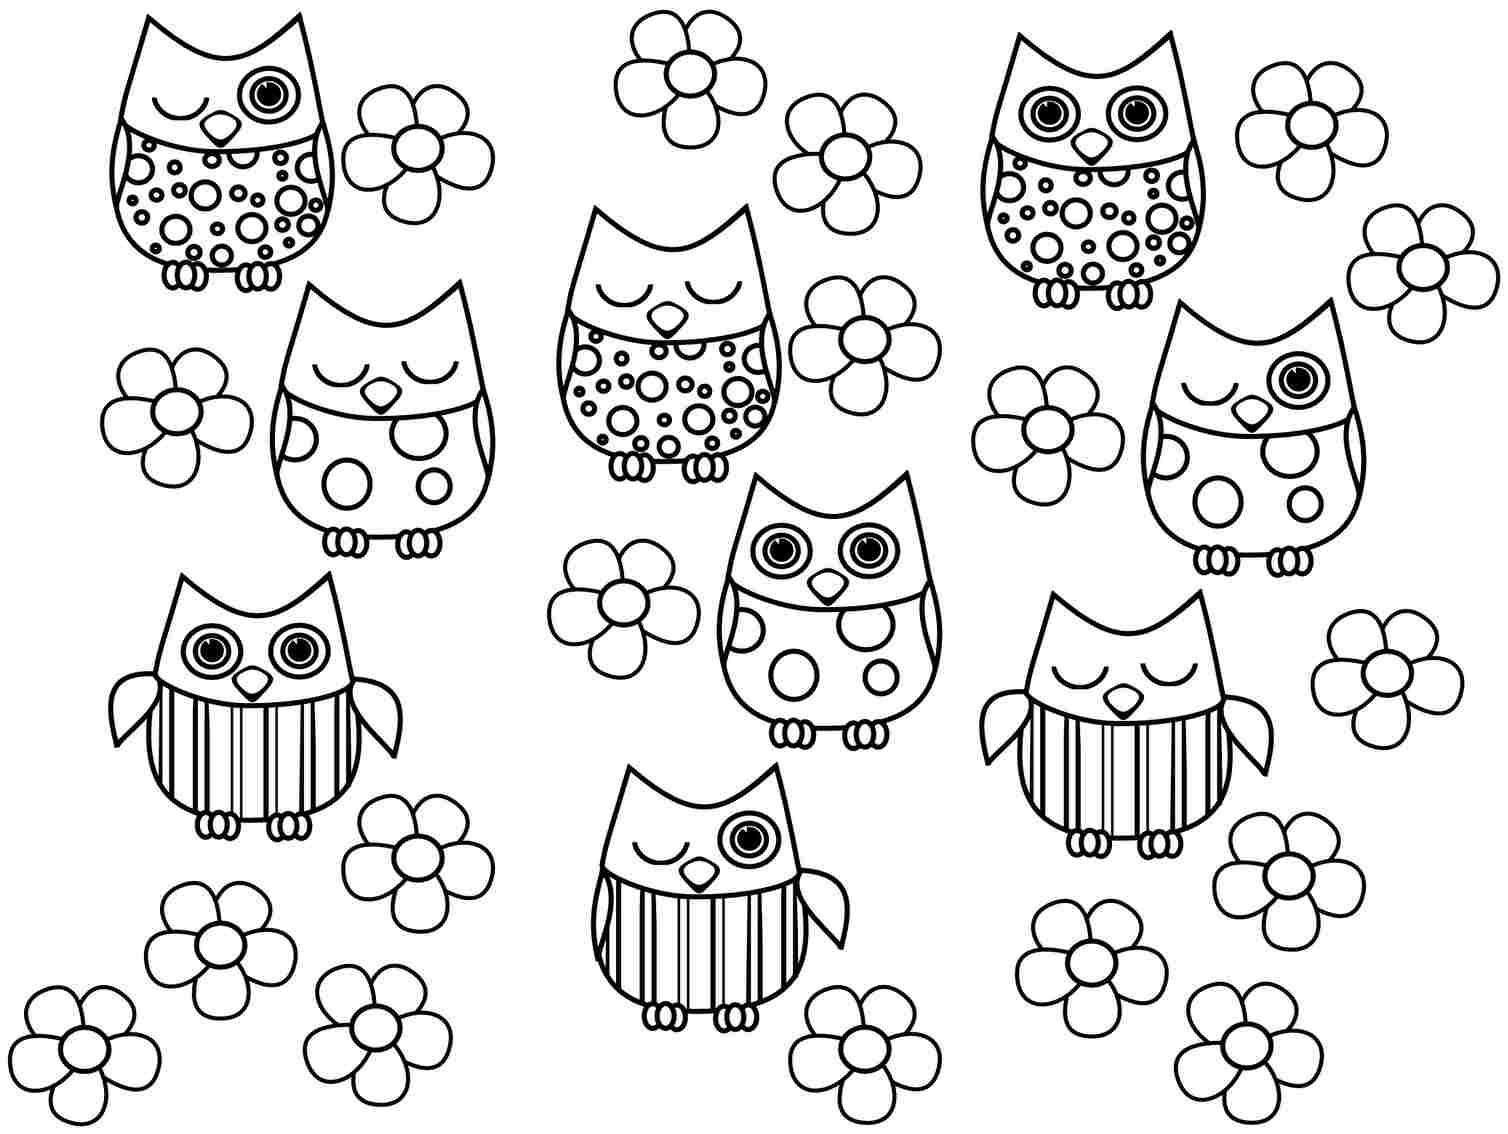 Print Full Size Image Free Colouring Sheets Animal Owl For Within ...